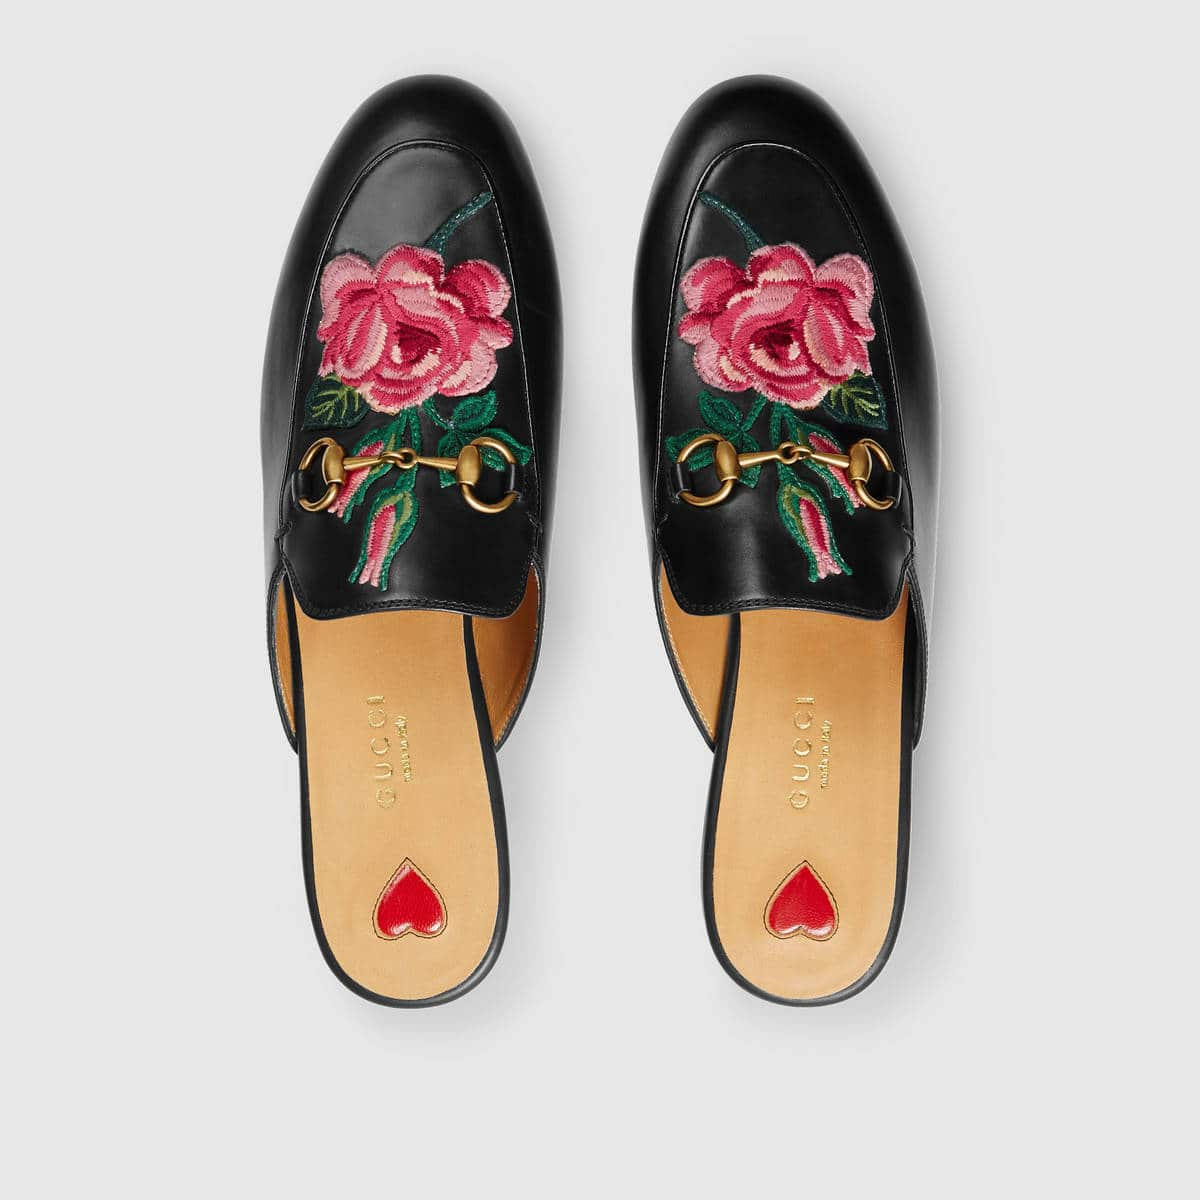 cbf348ceaa3 Gucci Black Princetown Floral Embroidered Slipper